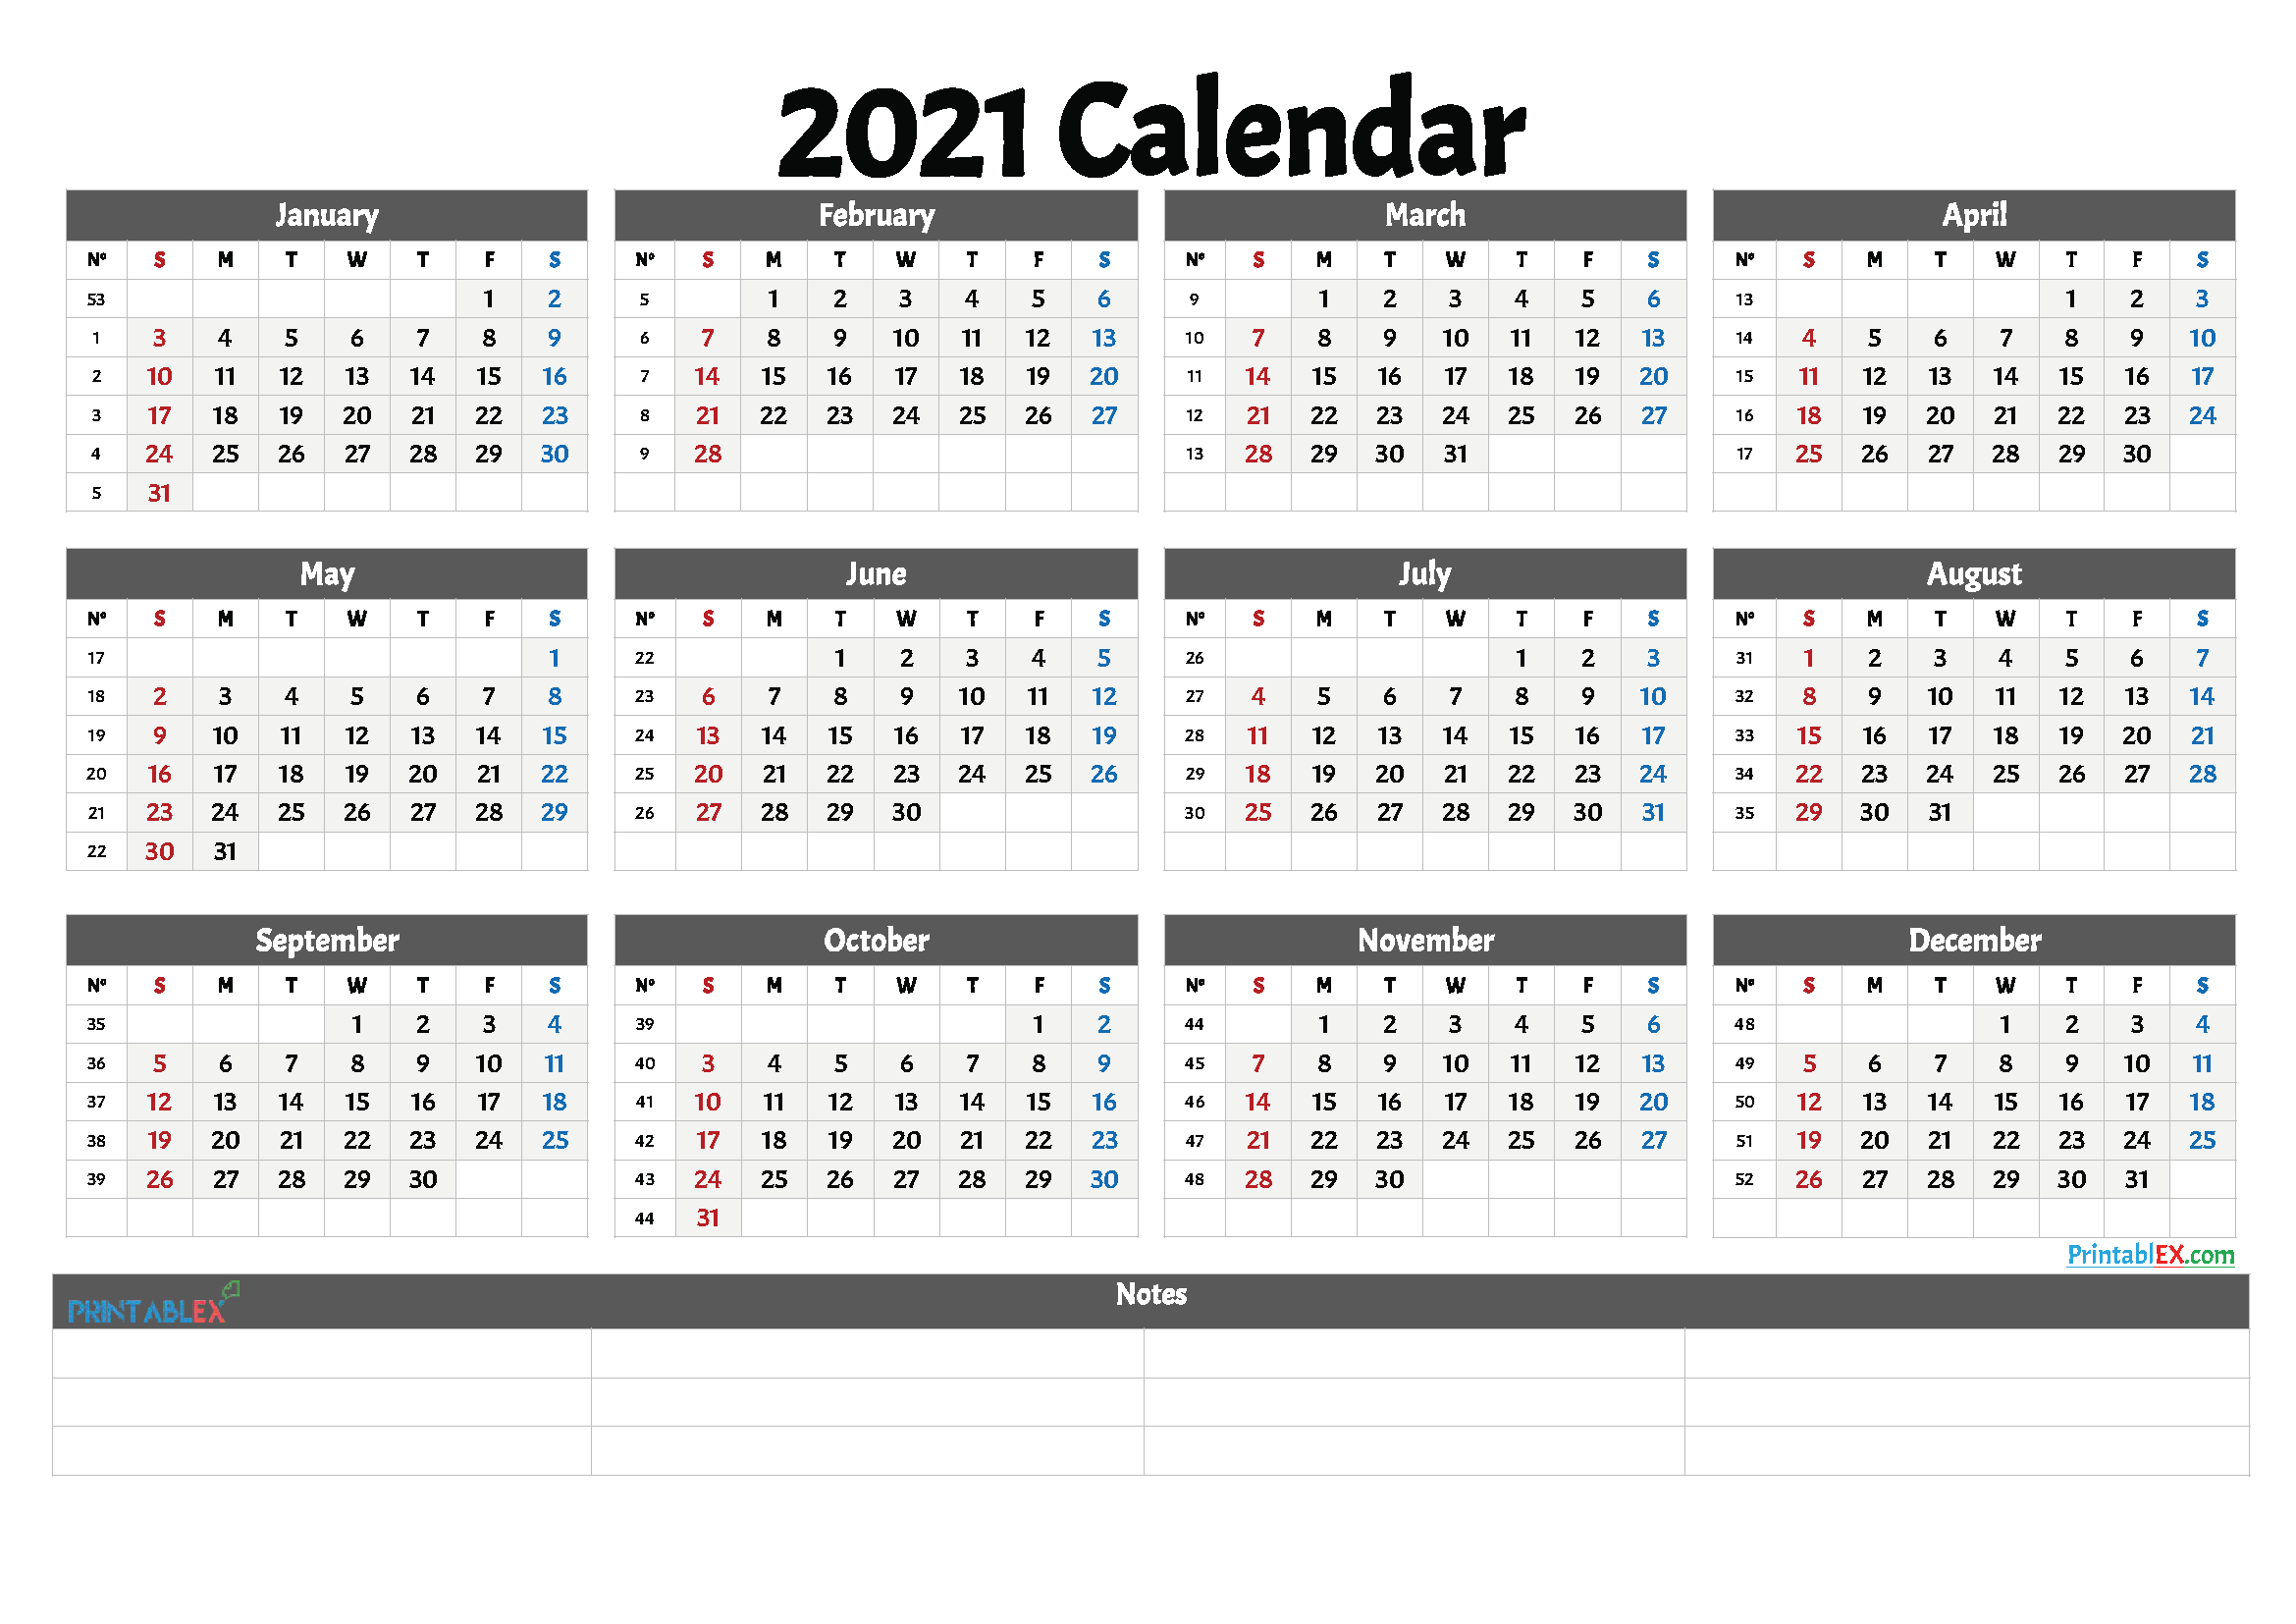 Calendar Image 2021 2021 Free Printable Yearly Calendar with Week Numbers – Free